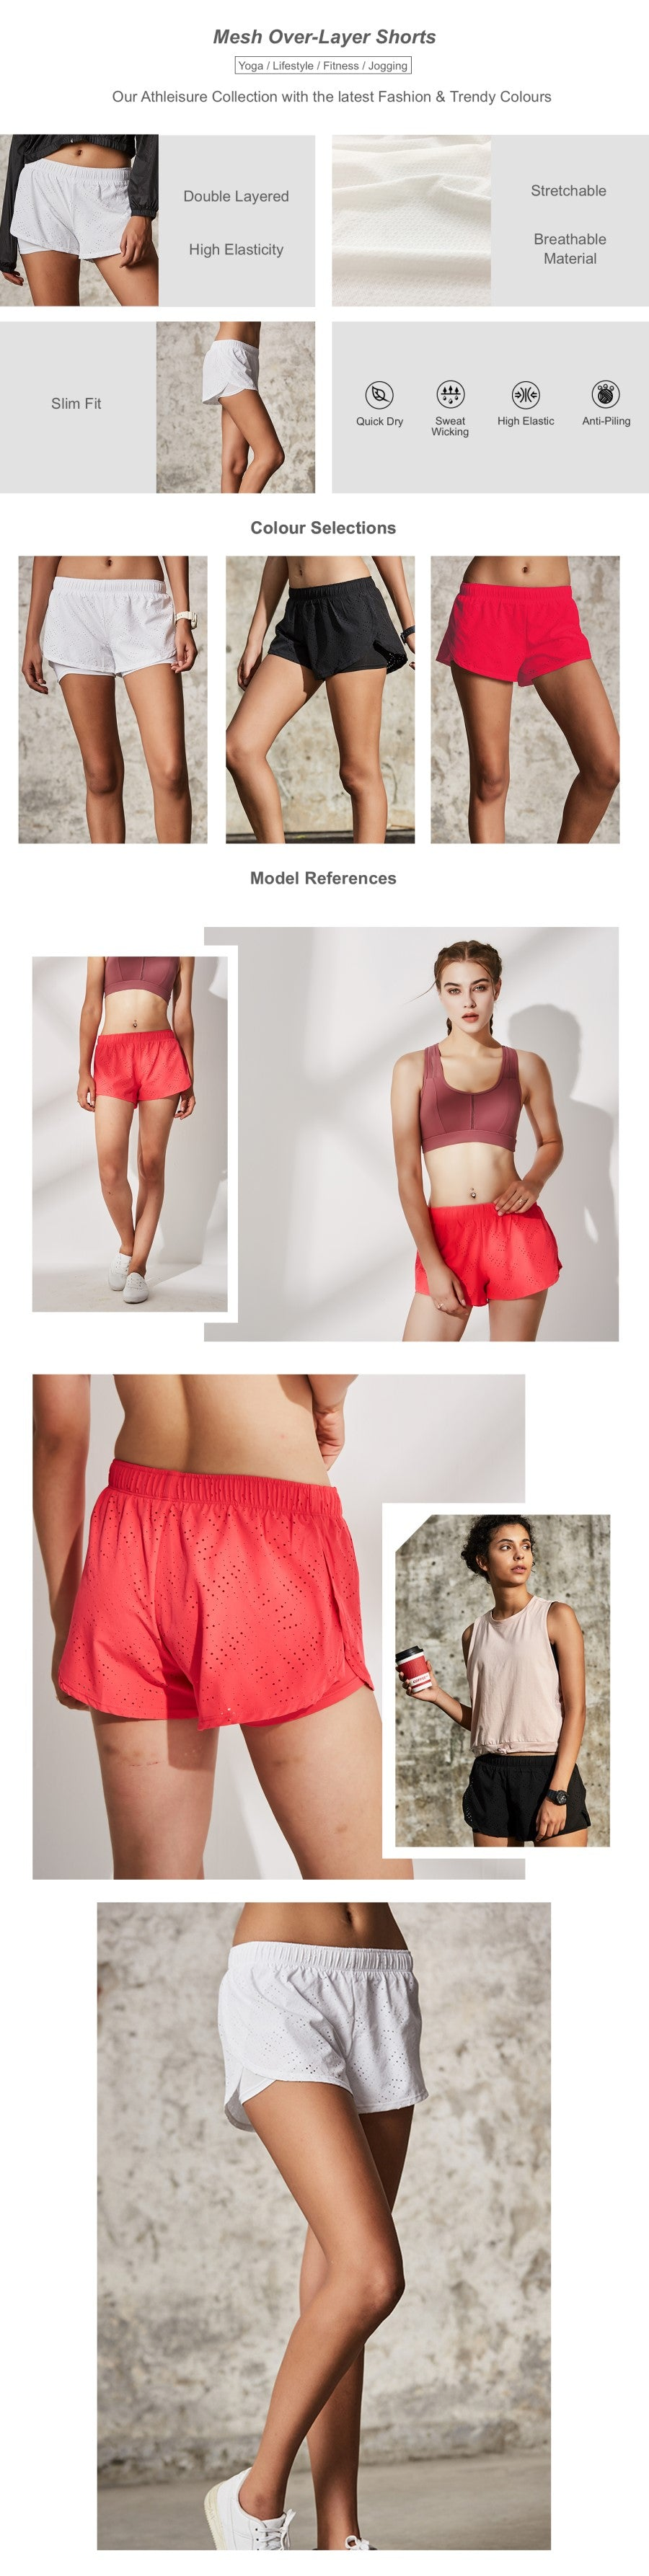 Mesh Over-Layer Shorts